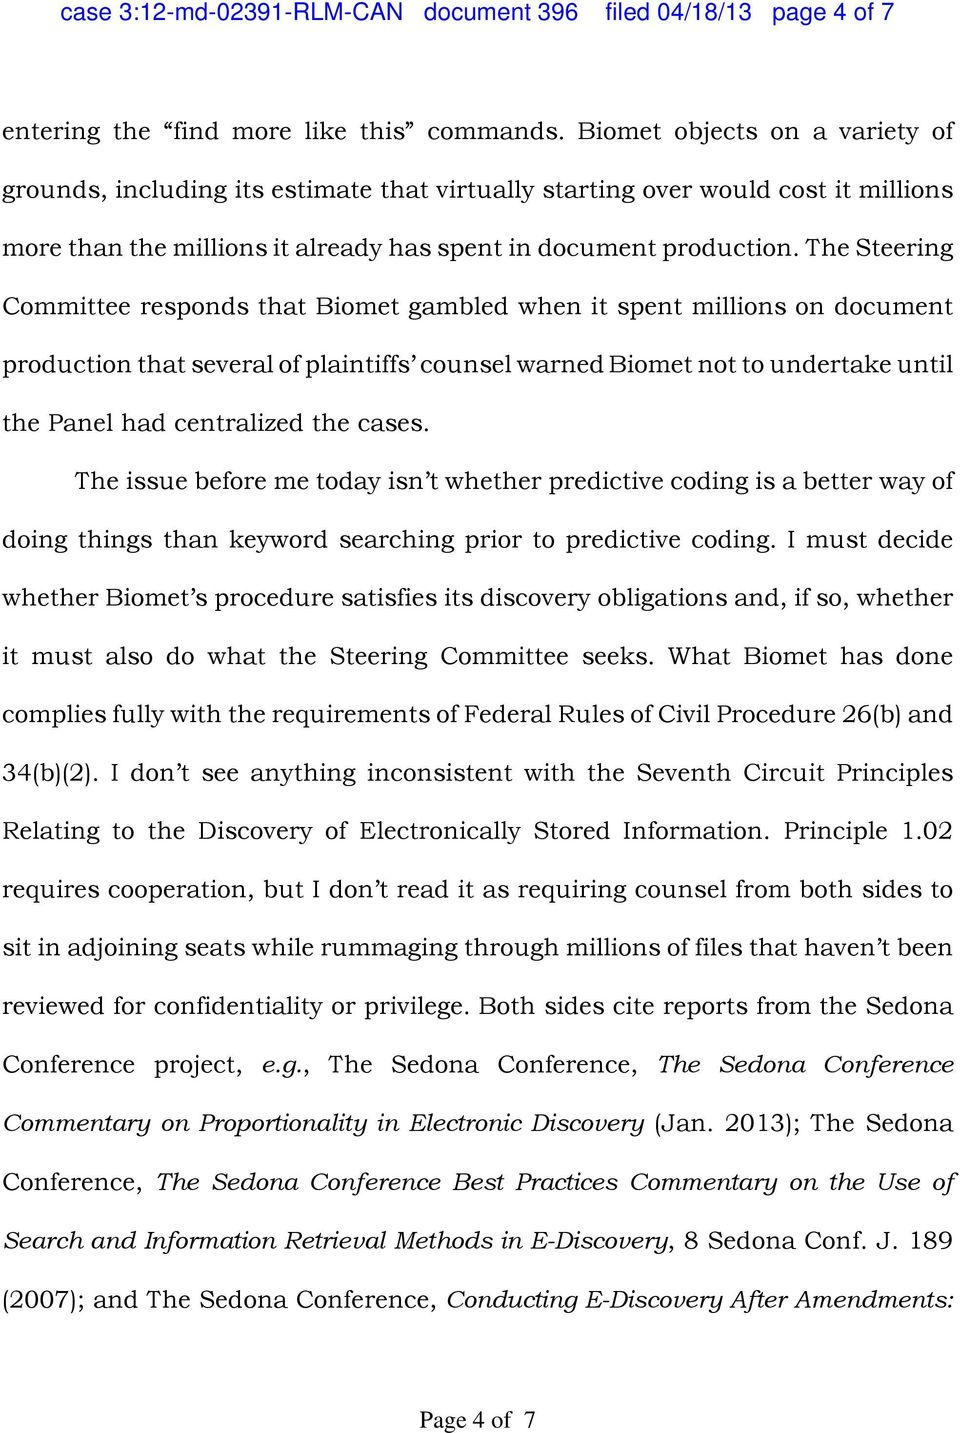 The Steering Committee responds that Biomet gambled when it spent millions on document production that several of plaintiffs counsel warned Biomet not to undertake until the Panel had centralized the